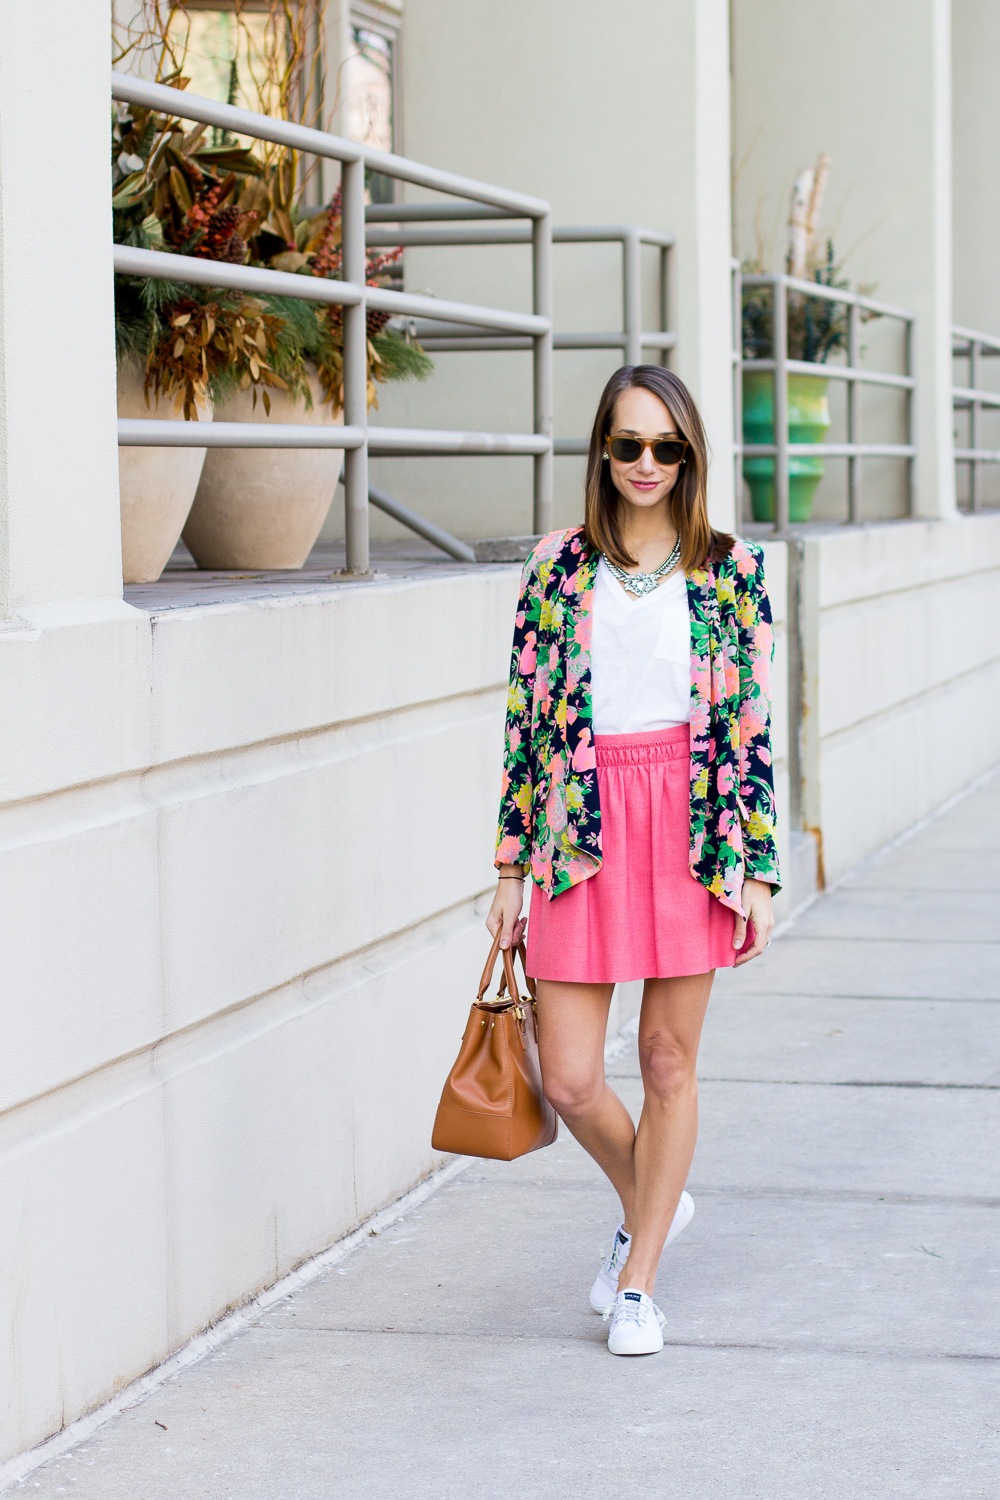 sperry seacoast sneakers, floral blazer, white sneakers, spring outfit, preppy outfit, the fox and she, blair culwell staky